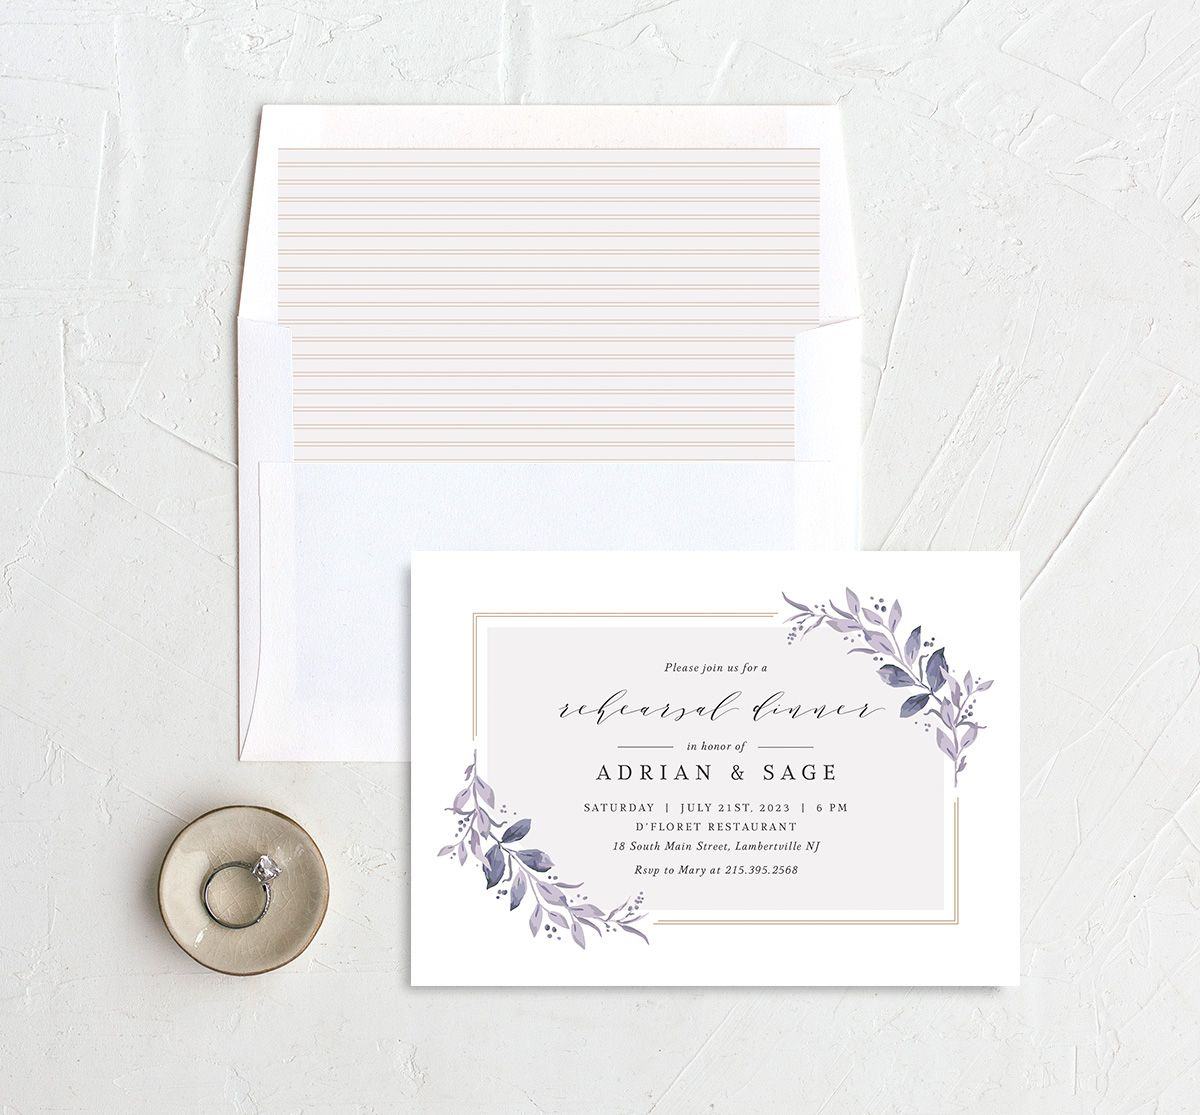 Classic Greenery Rehearsal Invitation with DIY liner in purple